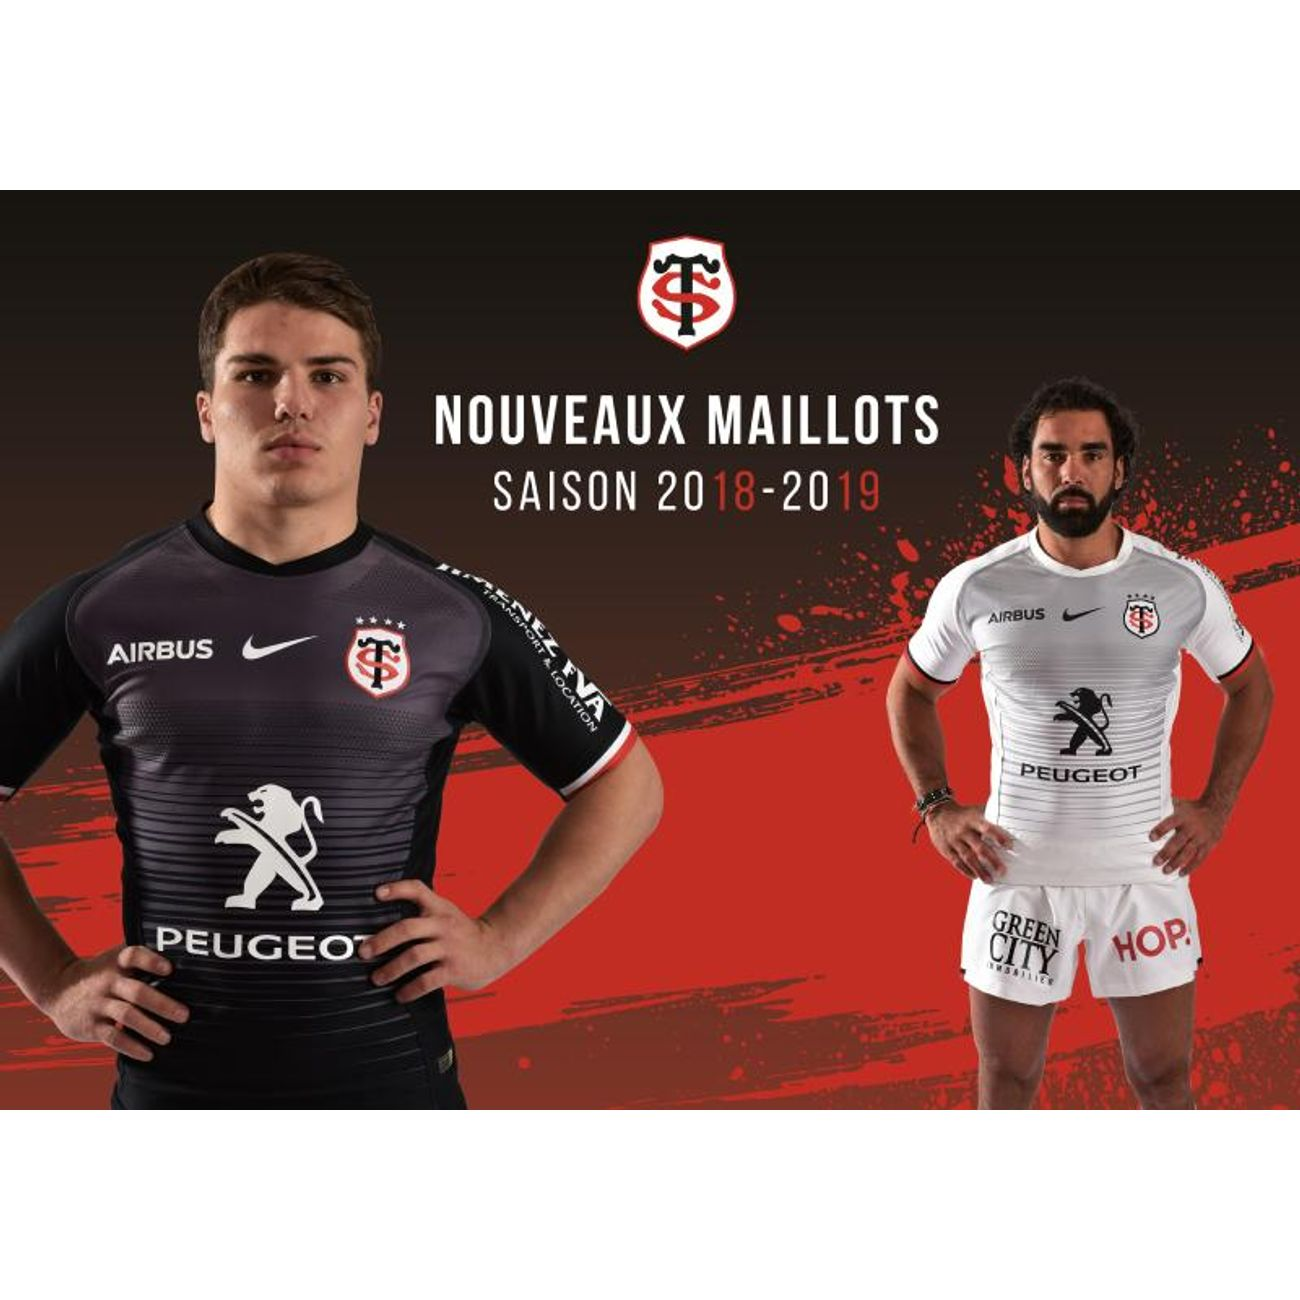 6e86a65c14f4 ... Rugby homme NIKE MAILLOT STADE TOULOUSAIN SAISON 2018 - 2019 - taille    M